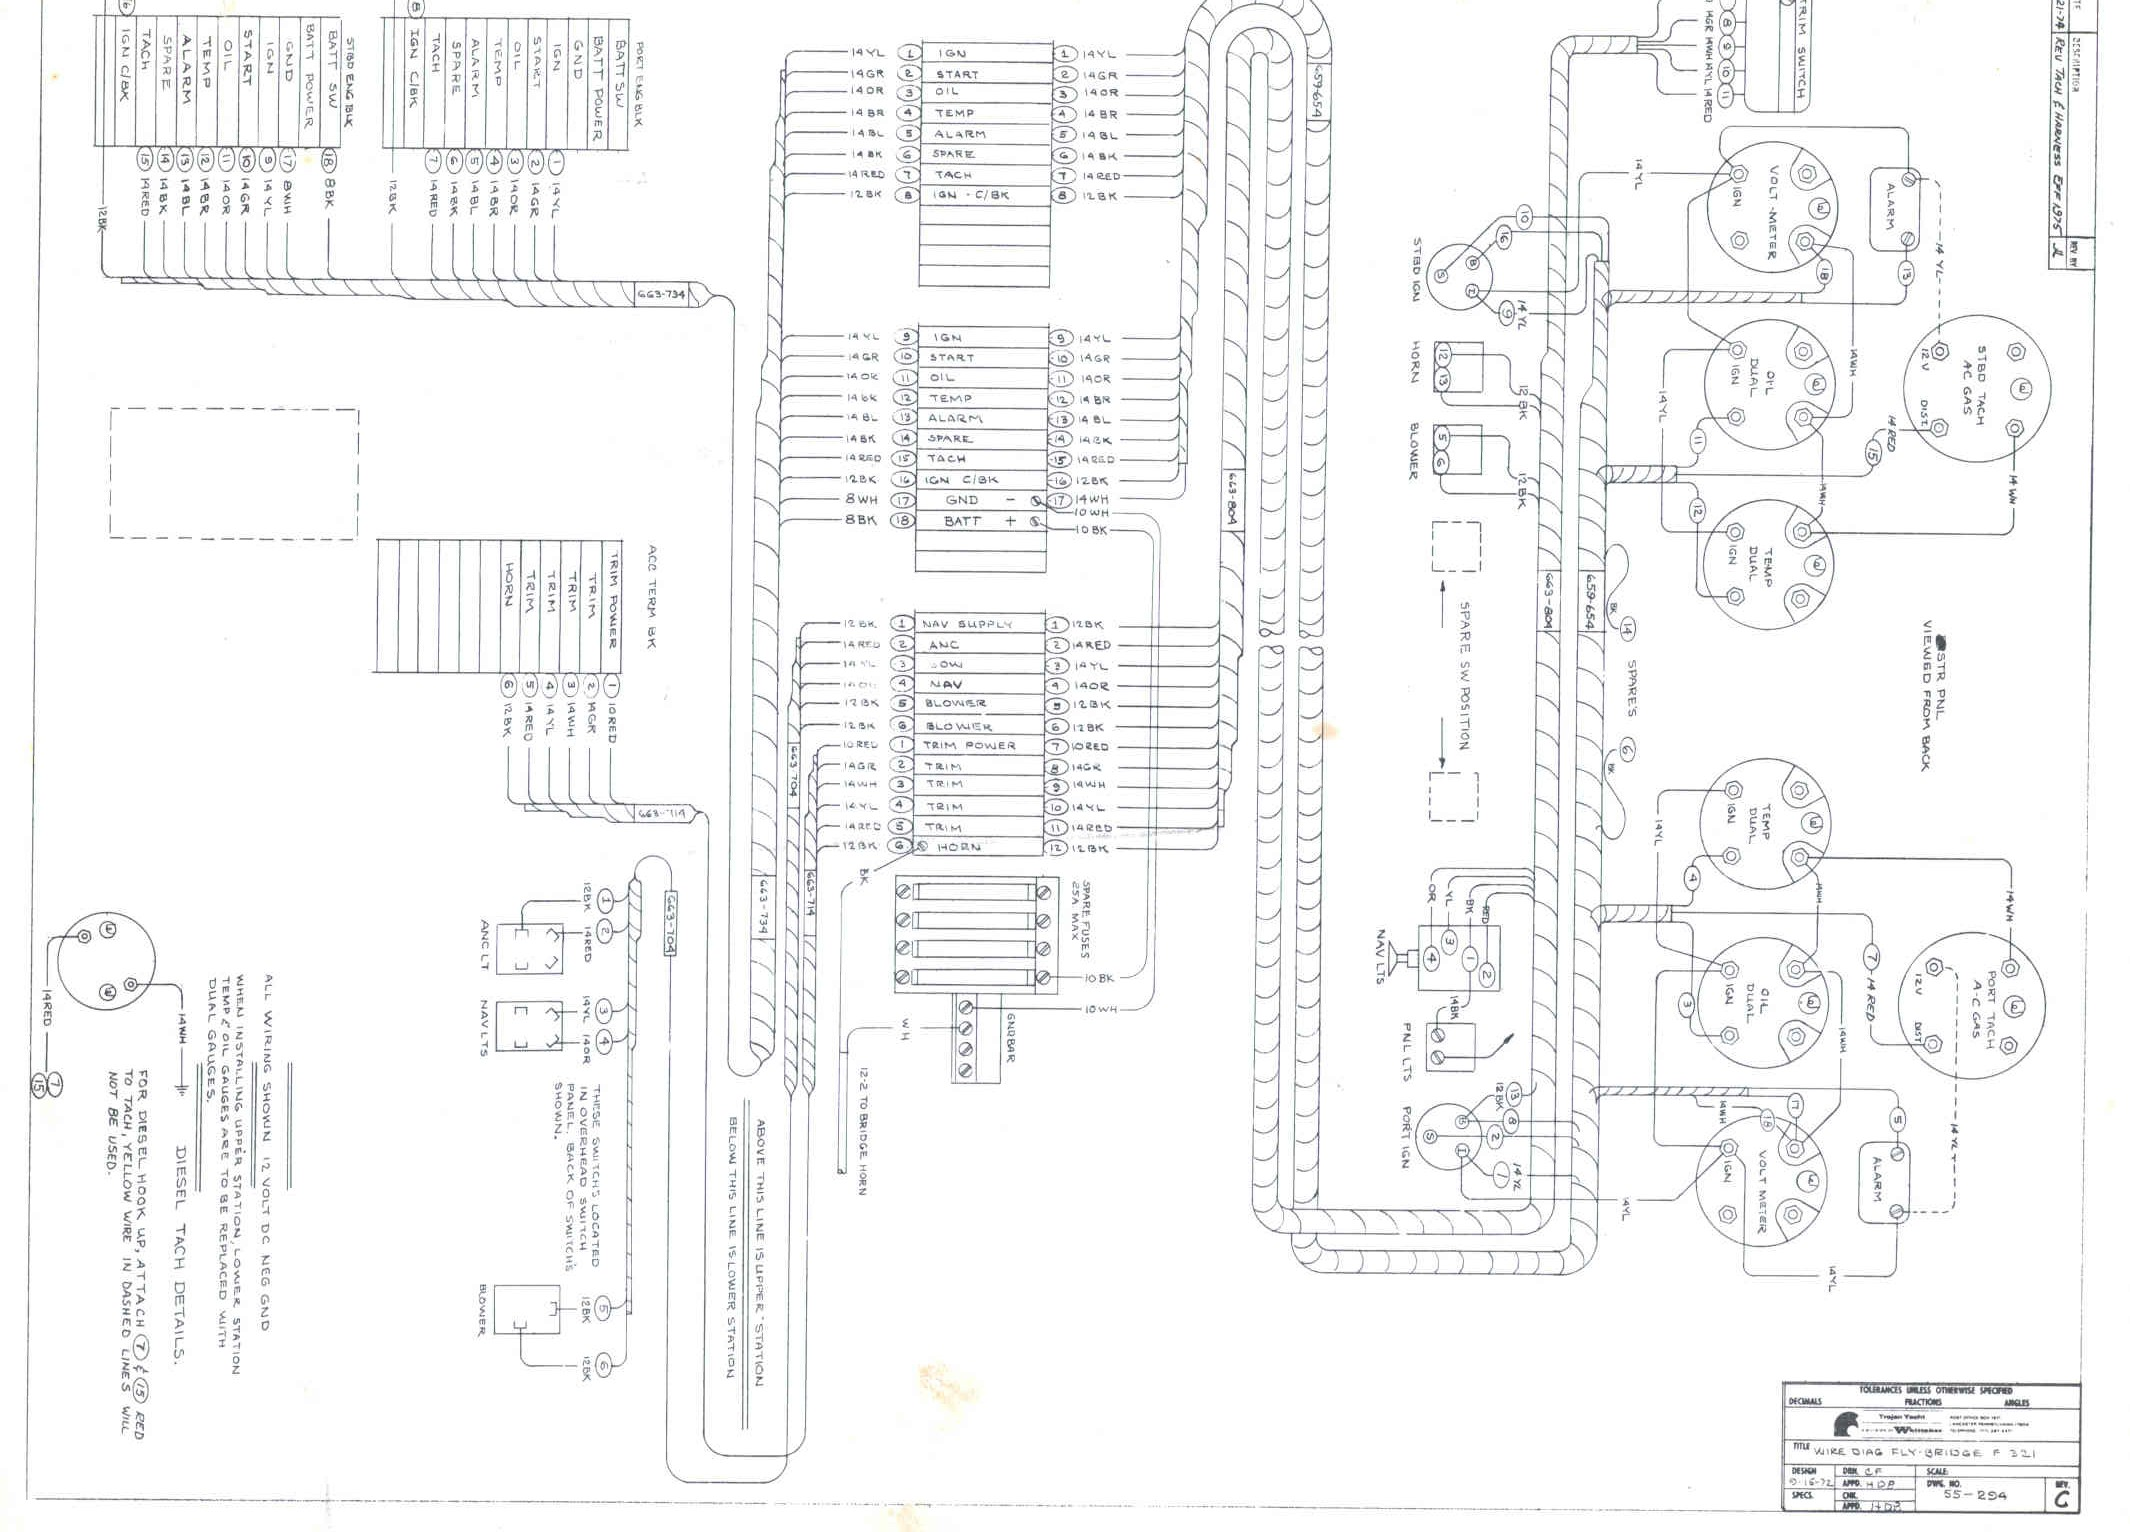 Original F 32 Schematics And Wiring Diagrams